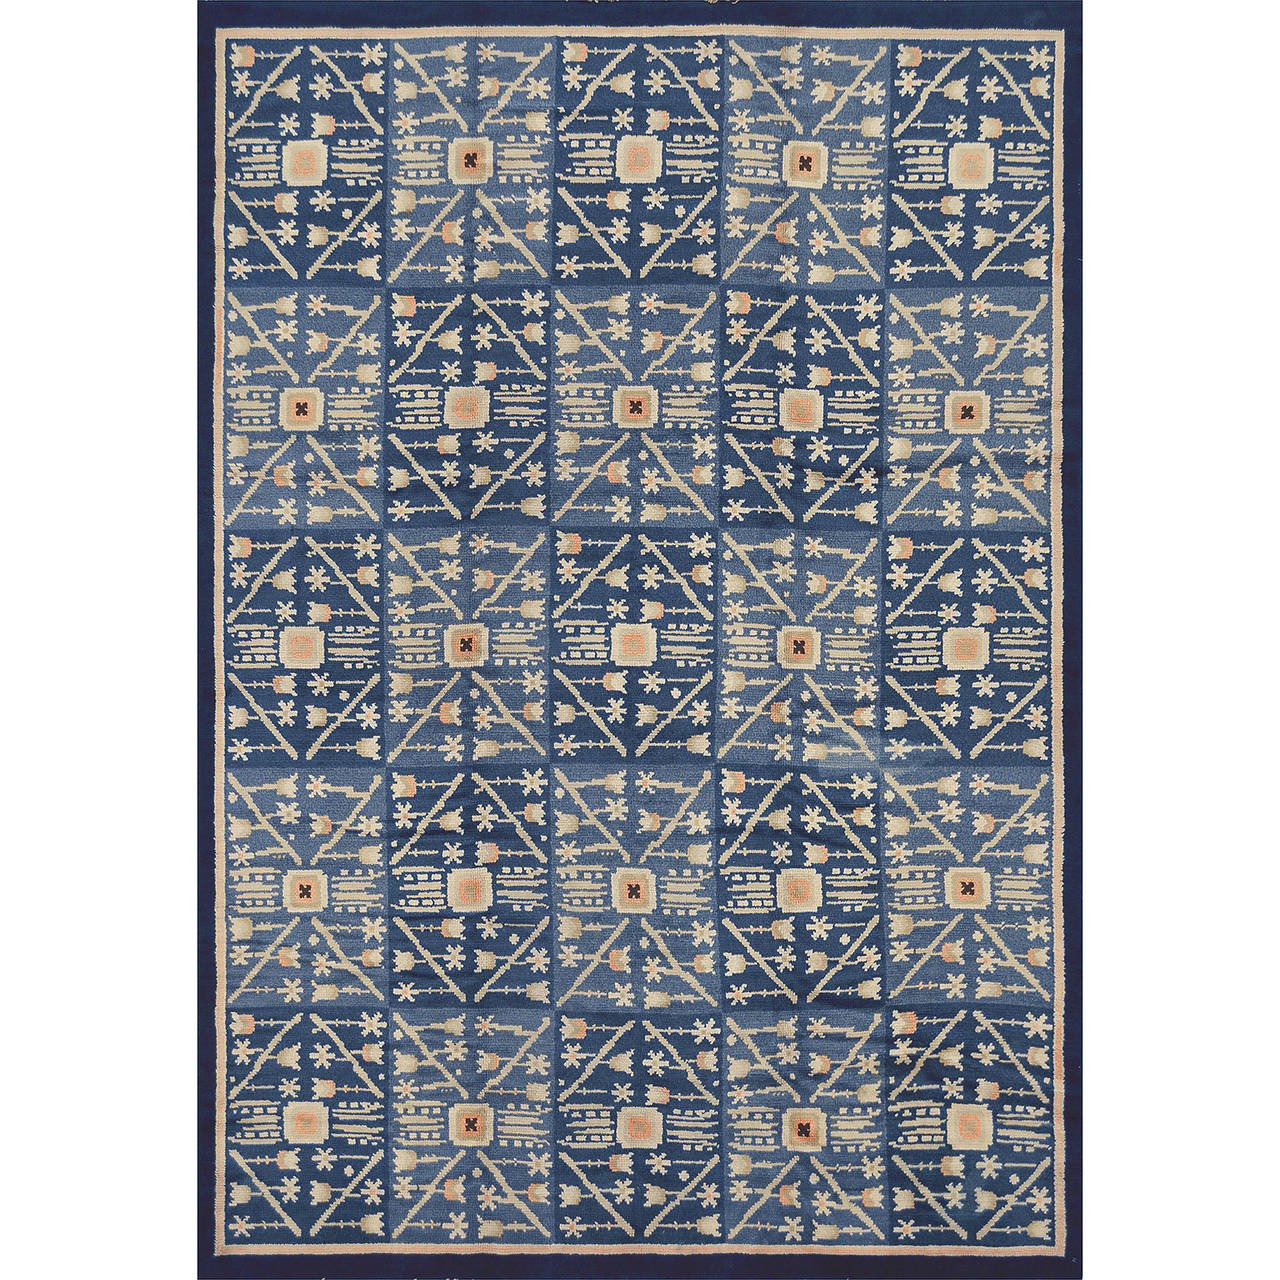 Mid 20th Century Modern Scandinavian Area Rug At 1stdibs: Mid-20th Century Swedish Deco Rug For Sale At 1stdibs